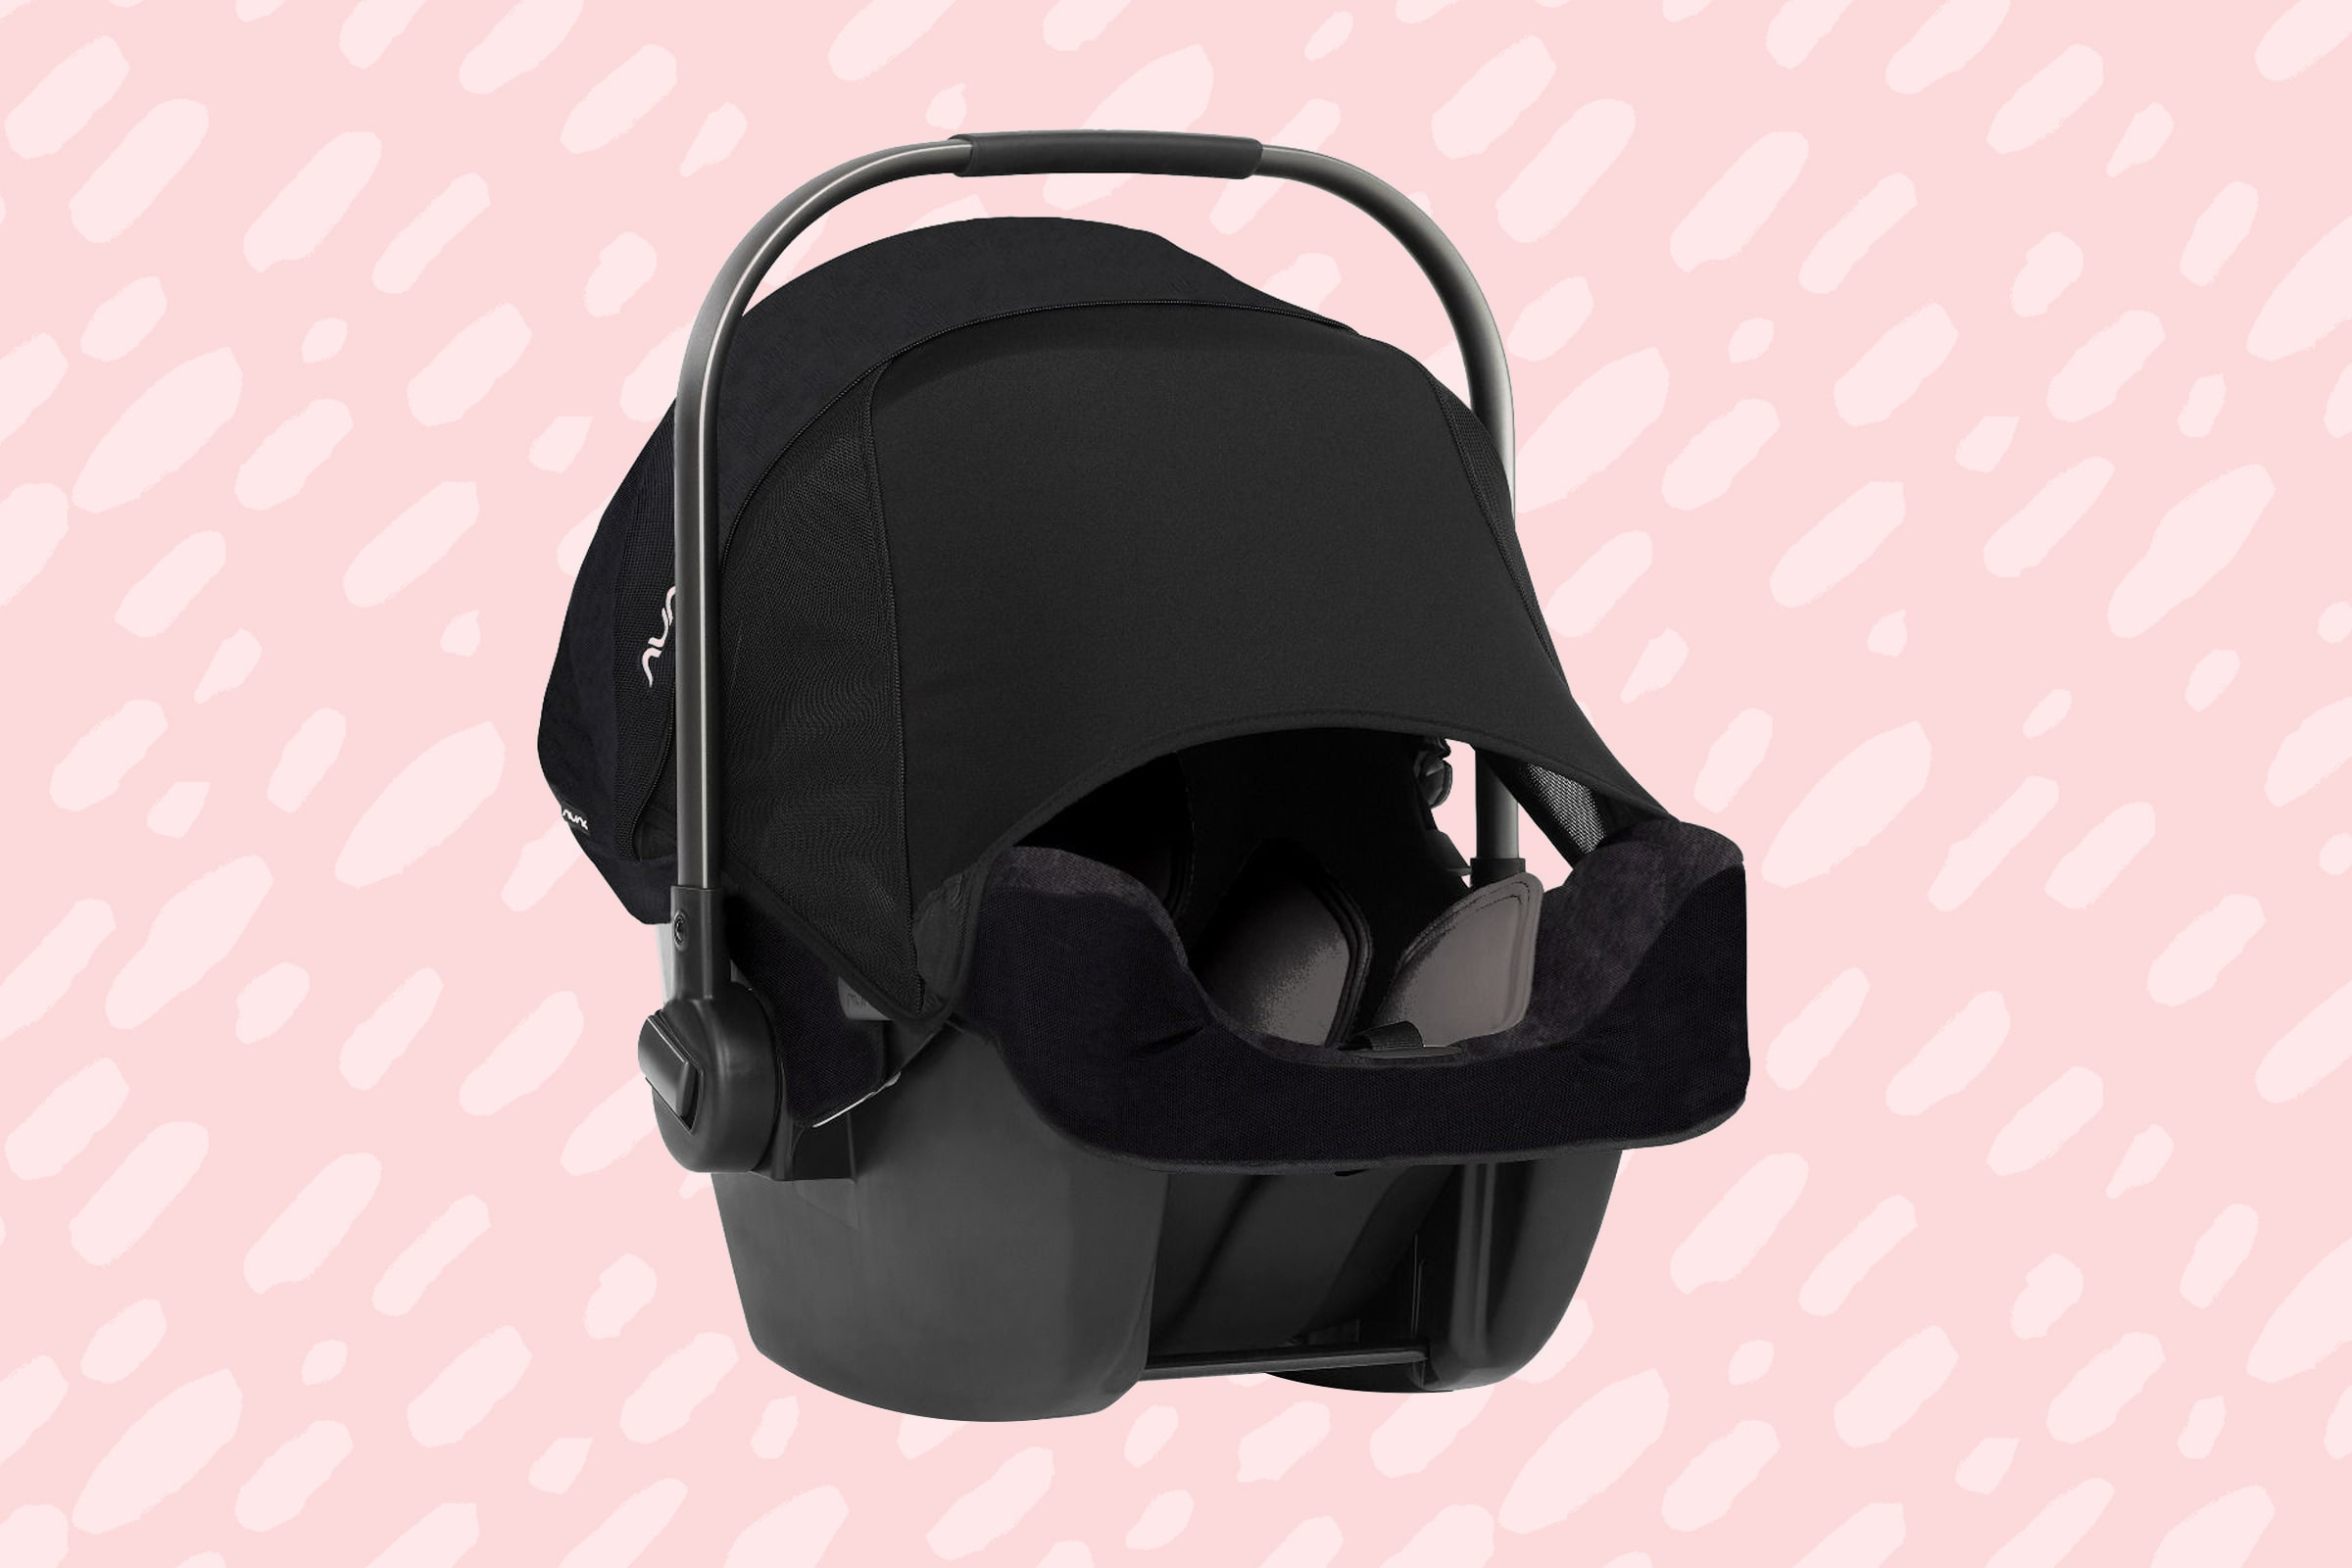 Steelcraft Infant Carrier Dimensions The Best Baby Capsule In Australia For 2019 Reviews By Cosier